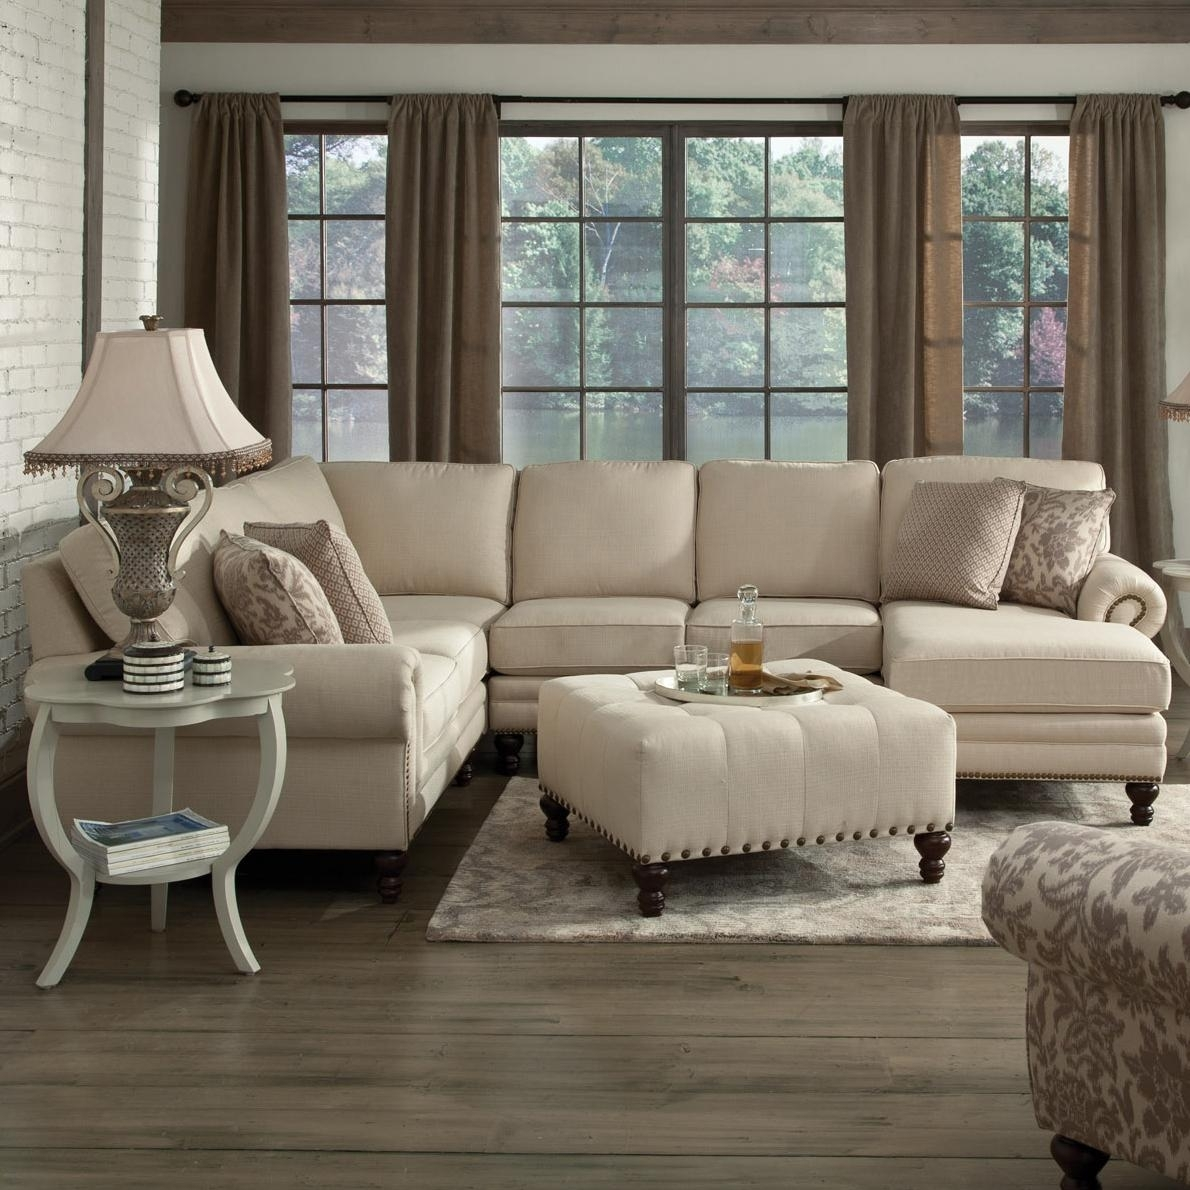 England Amix Six Seat Sectional With Right Chaise | Dunk & Bright Within England Sectional Sofas (Photo 8 of 10)